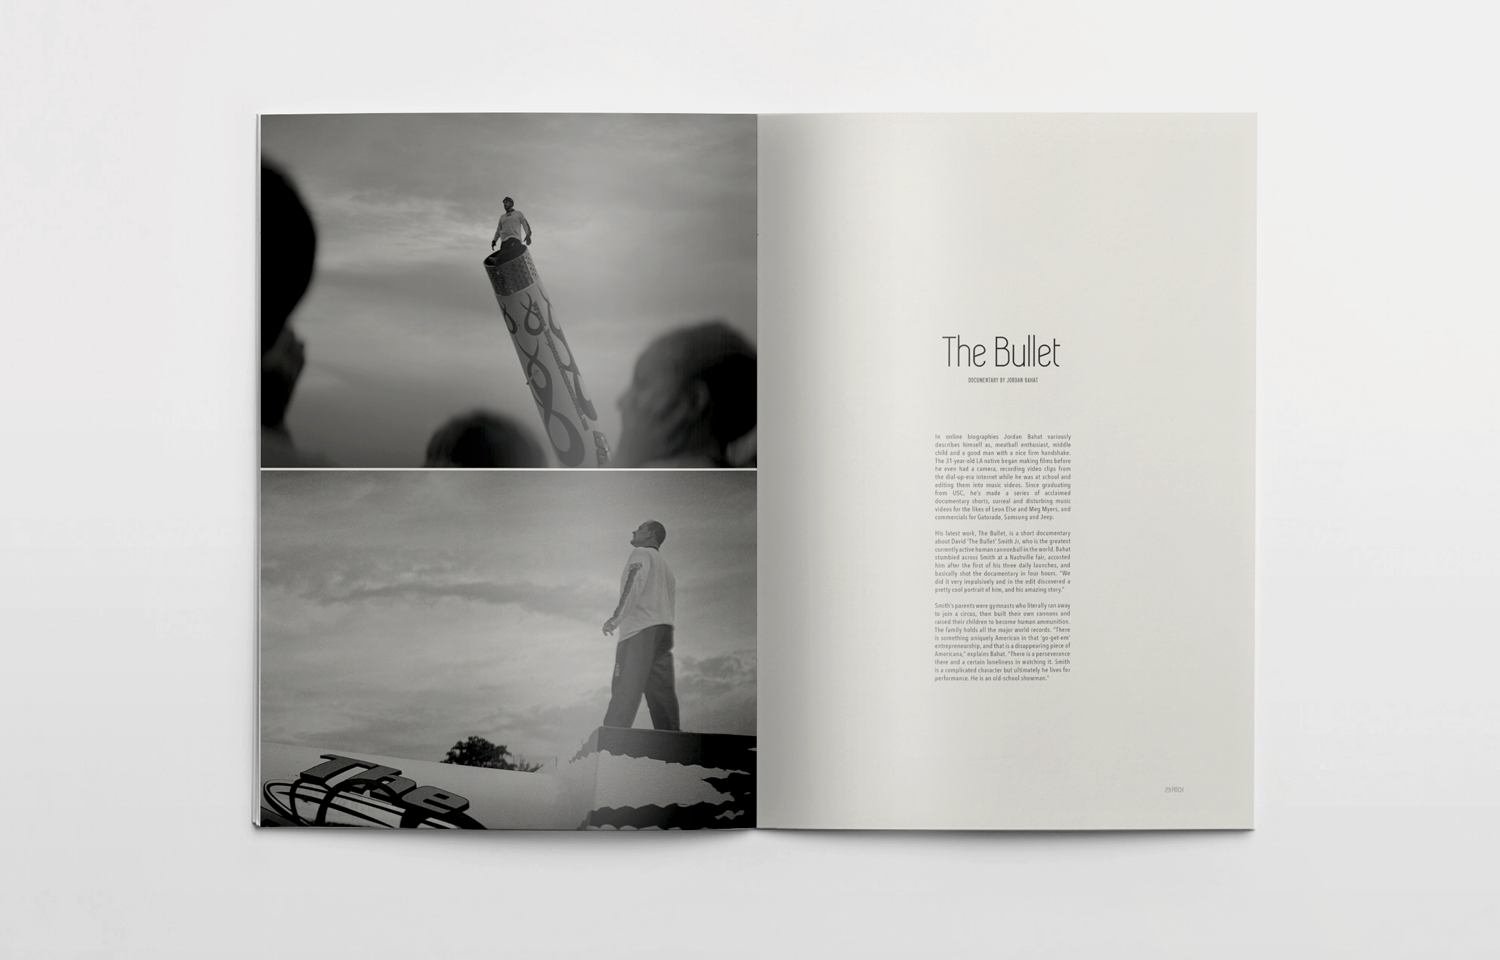 Editorial design for Pitch magazine showcasing The Bullet, a documentary by Jordan Bahat.